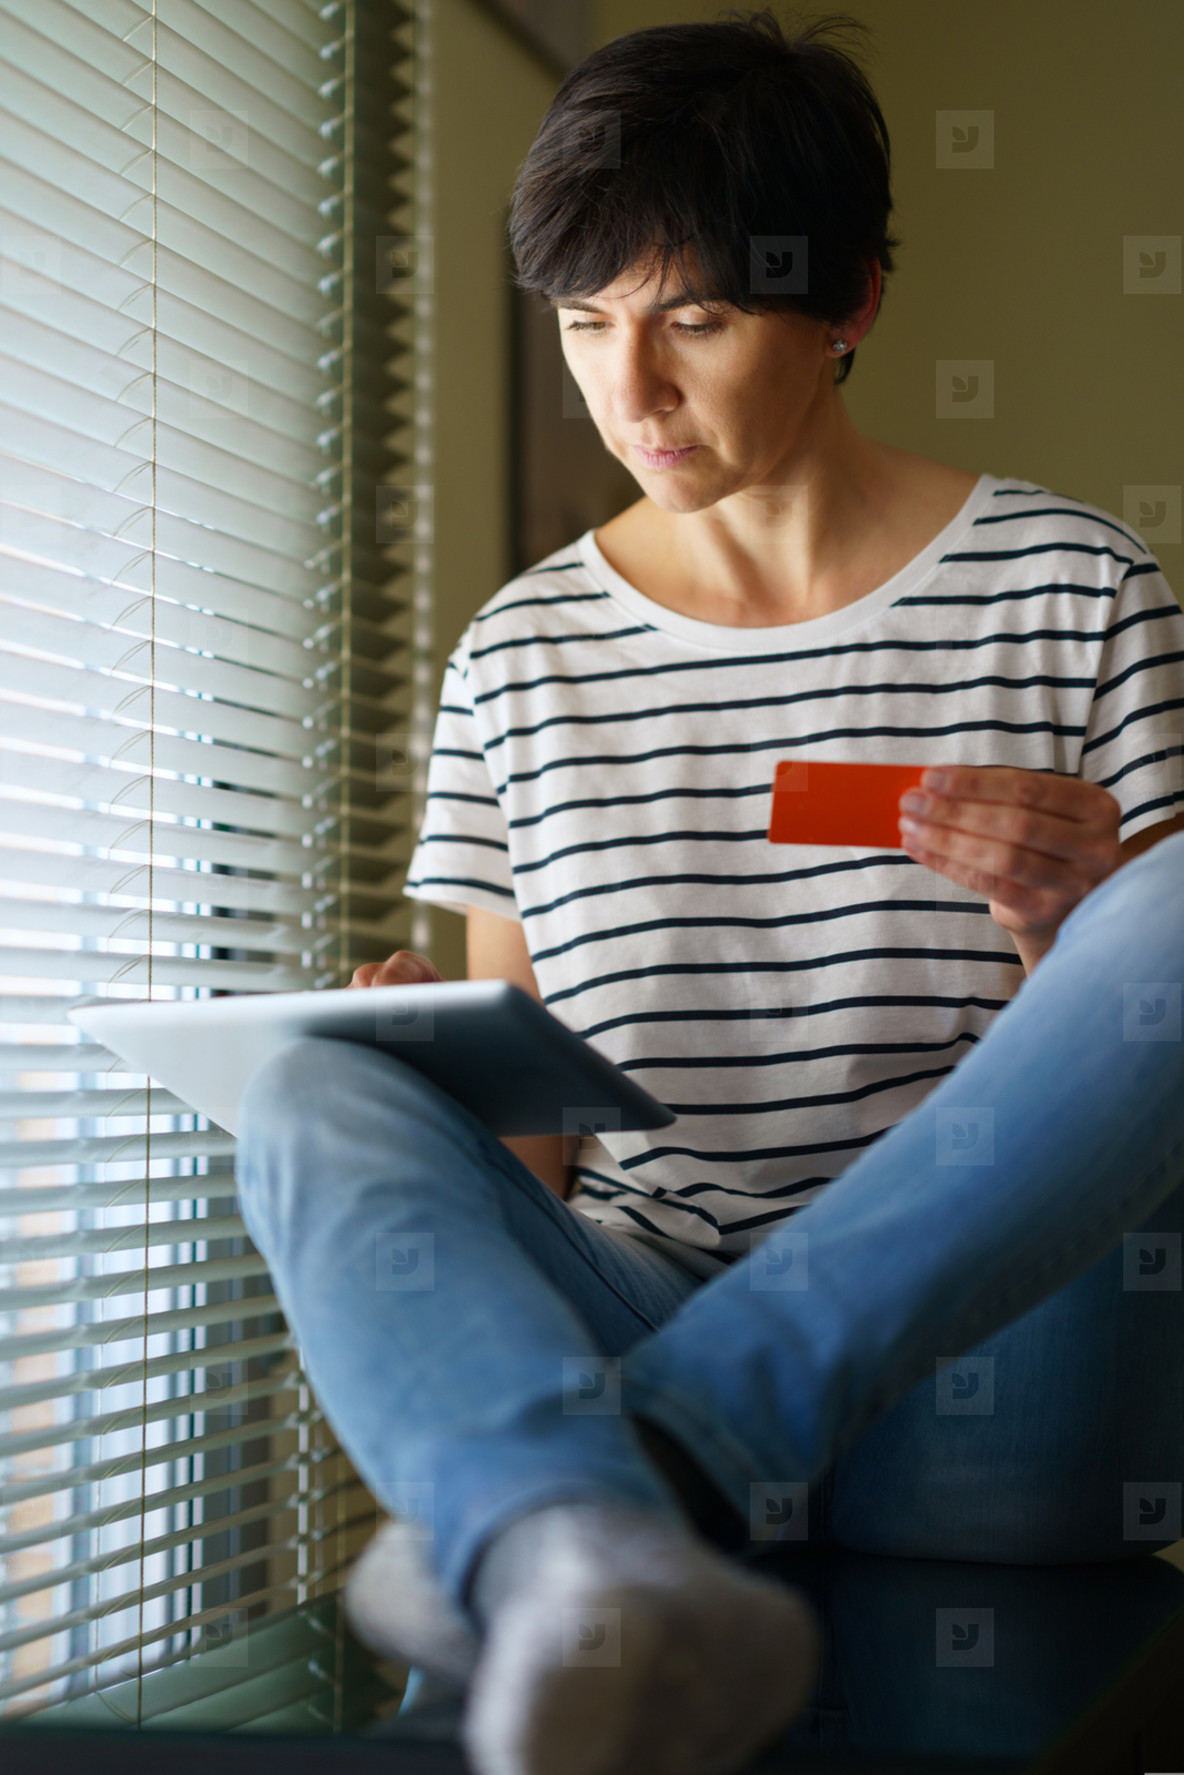 Middle aged woman shopping online with her digital tablet paying with a credit card